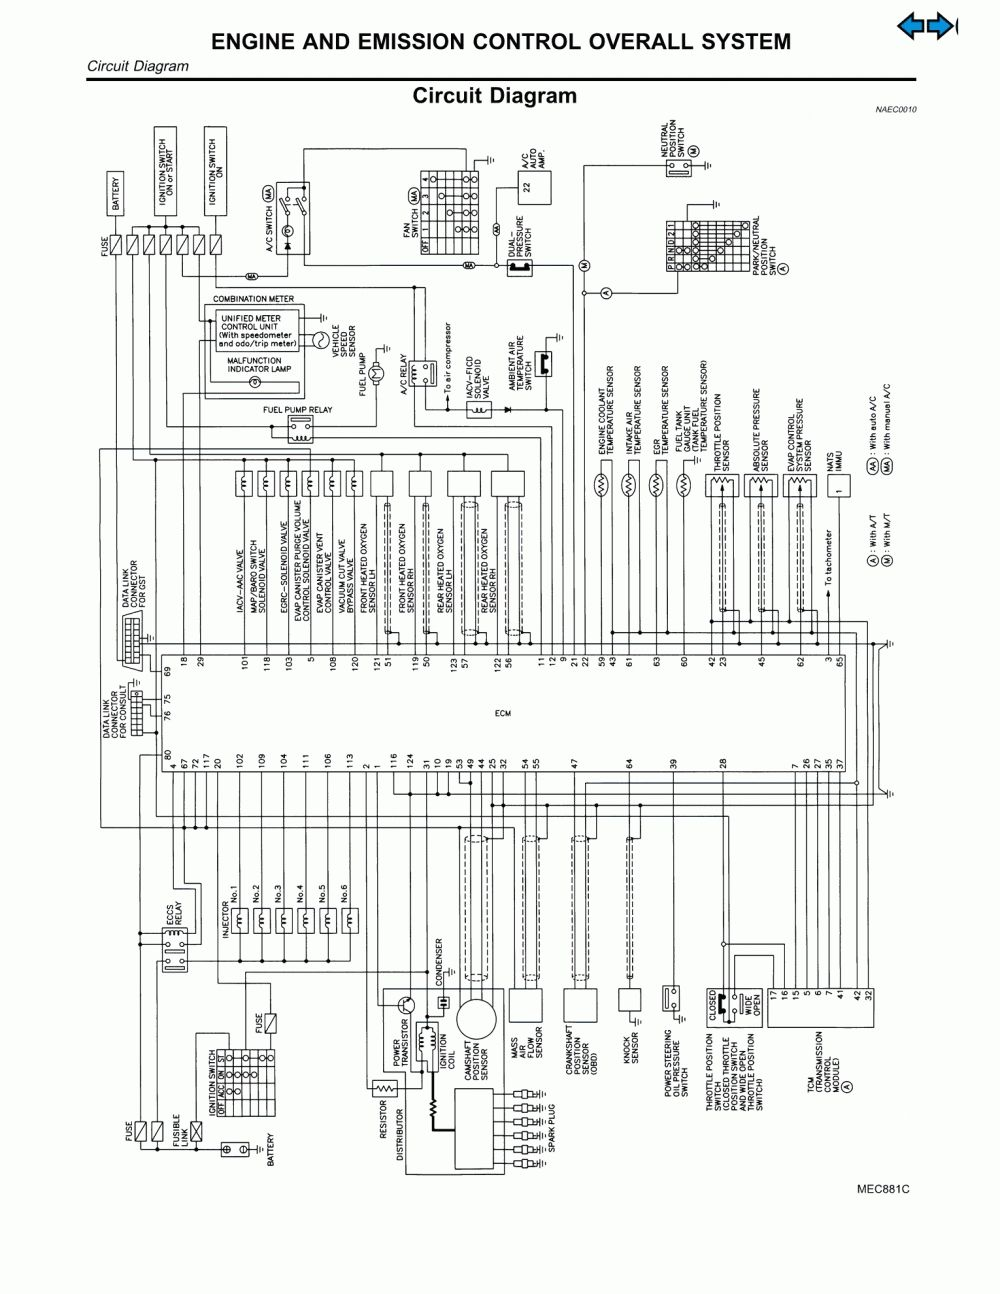 nissan leaf engine diagram nissan leaf battery wiring diagram | wiringdiagram.org ... #8